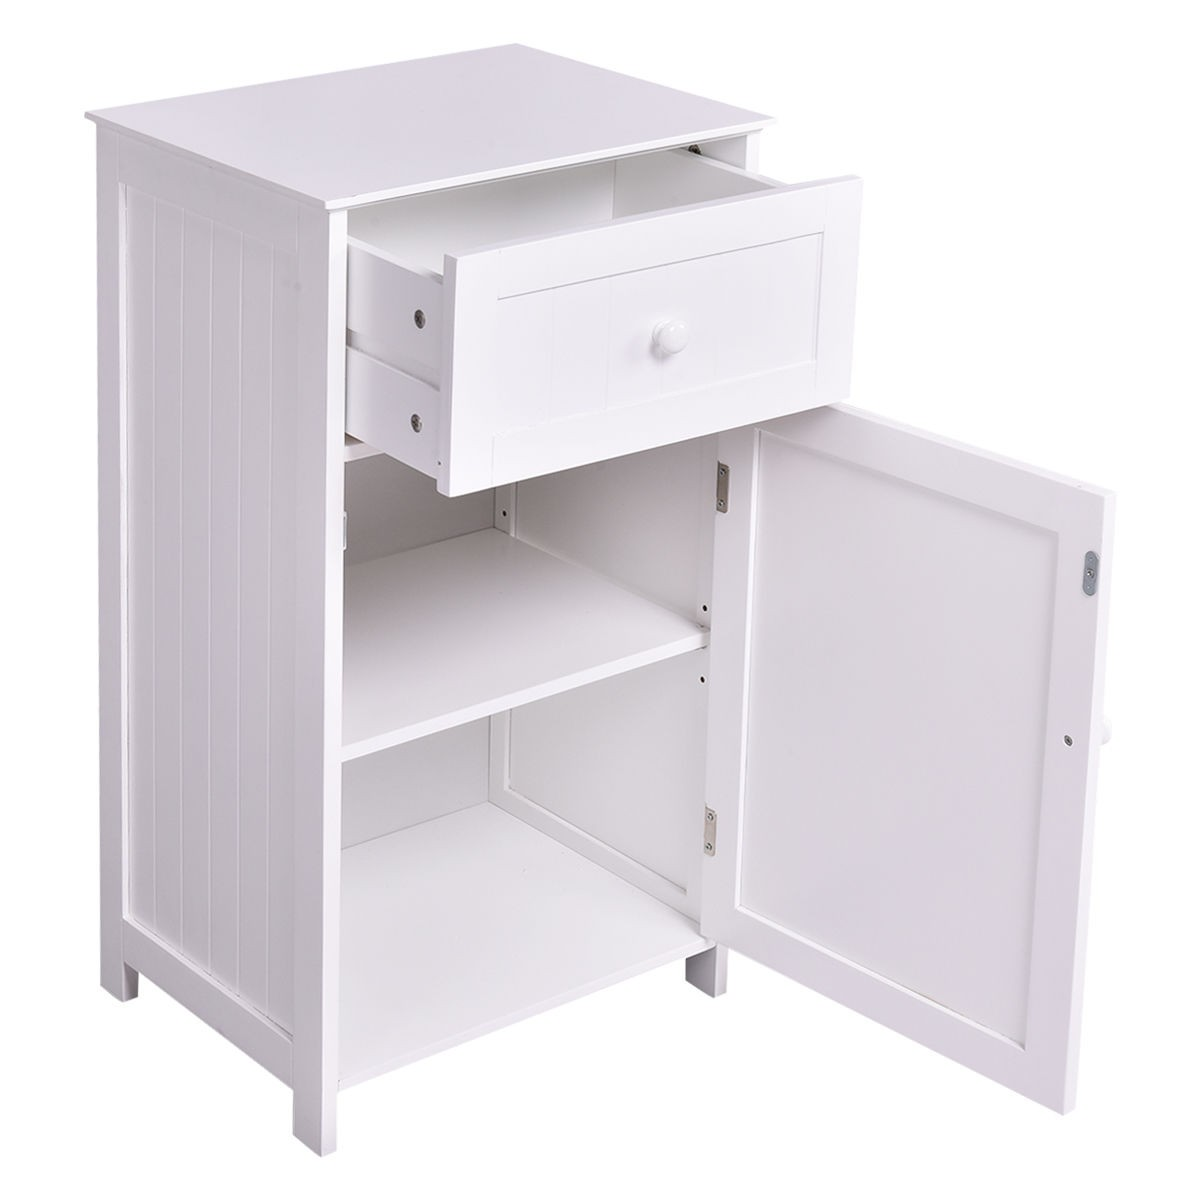 bathroom floor cabinets white kitchen bathroom storage cabinet floor stand white wood 15857